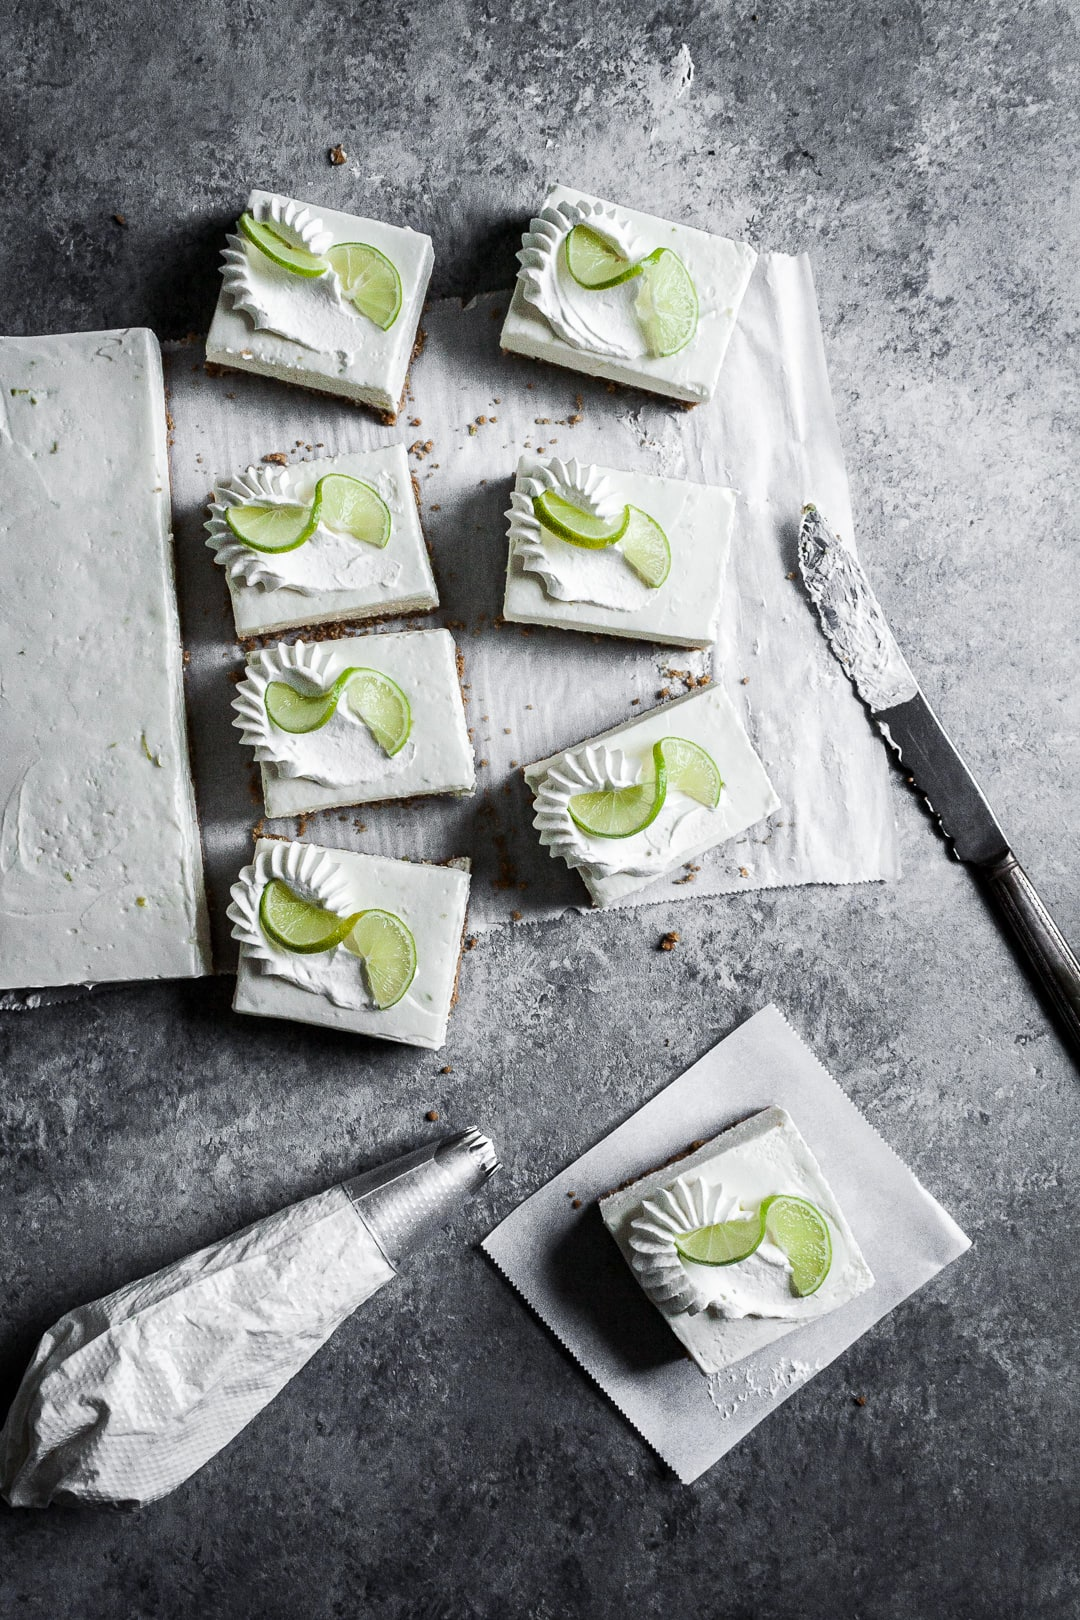 Five sliced cheesecake bars on parchment paper squares on a grey background with a piping bag of whipped cream and vintage knife nearby